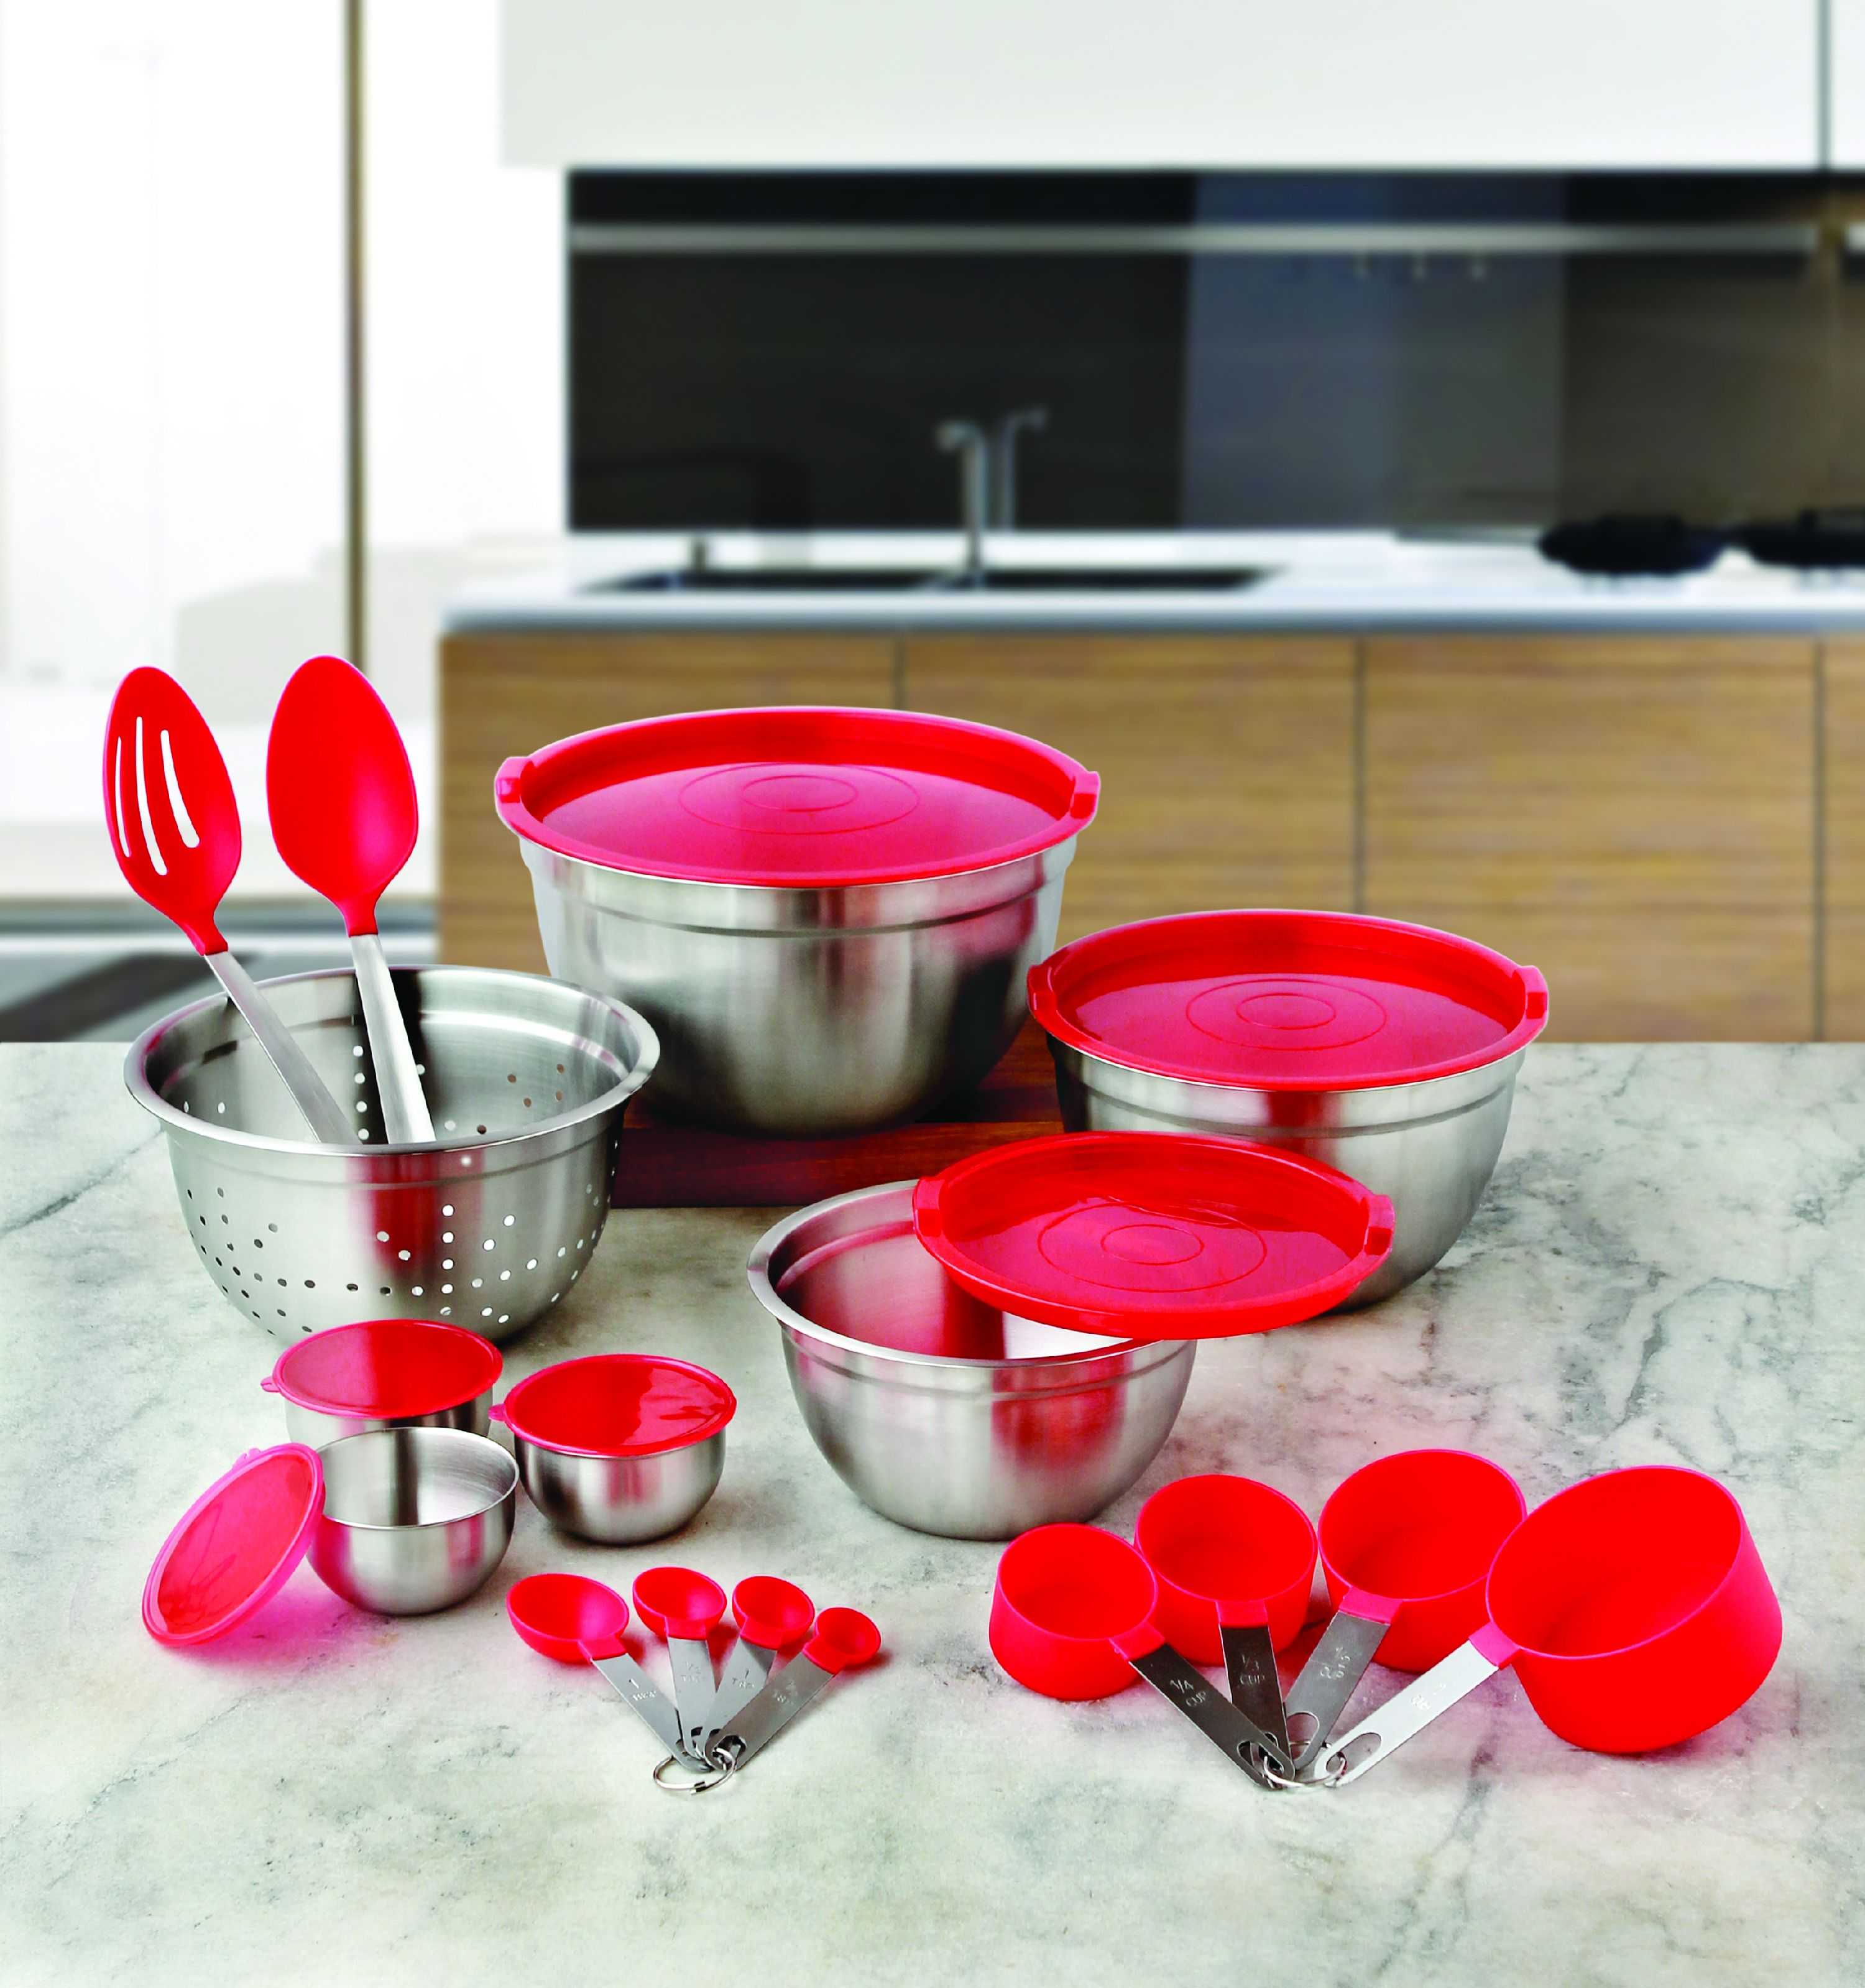 Better Homes and Gardens 23-Piece Gadget and Utensil Set, Red